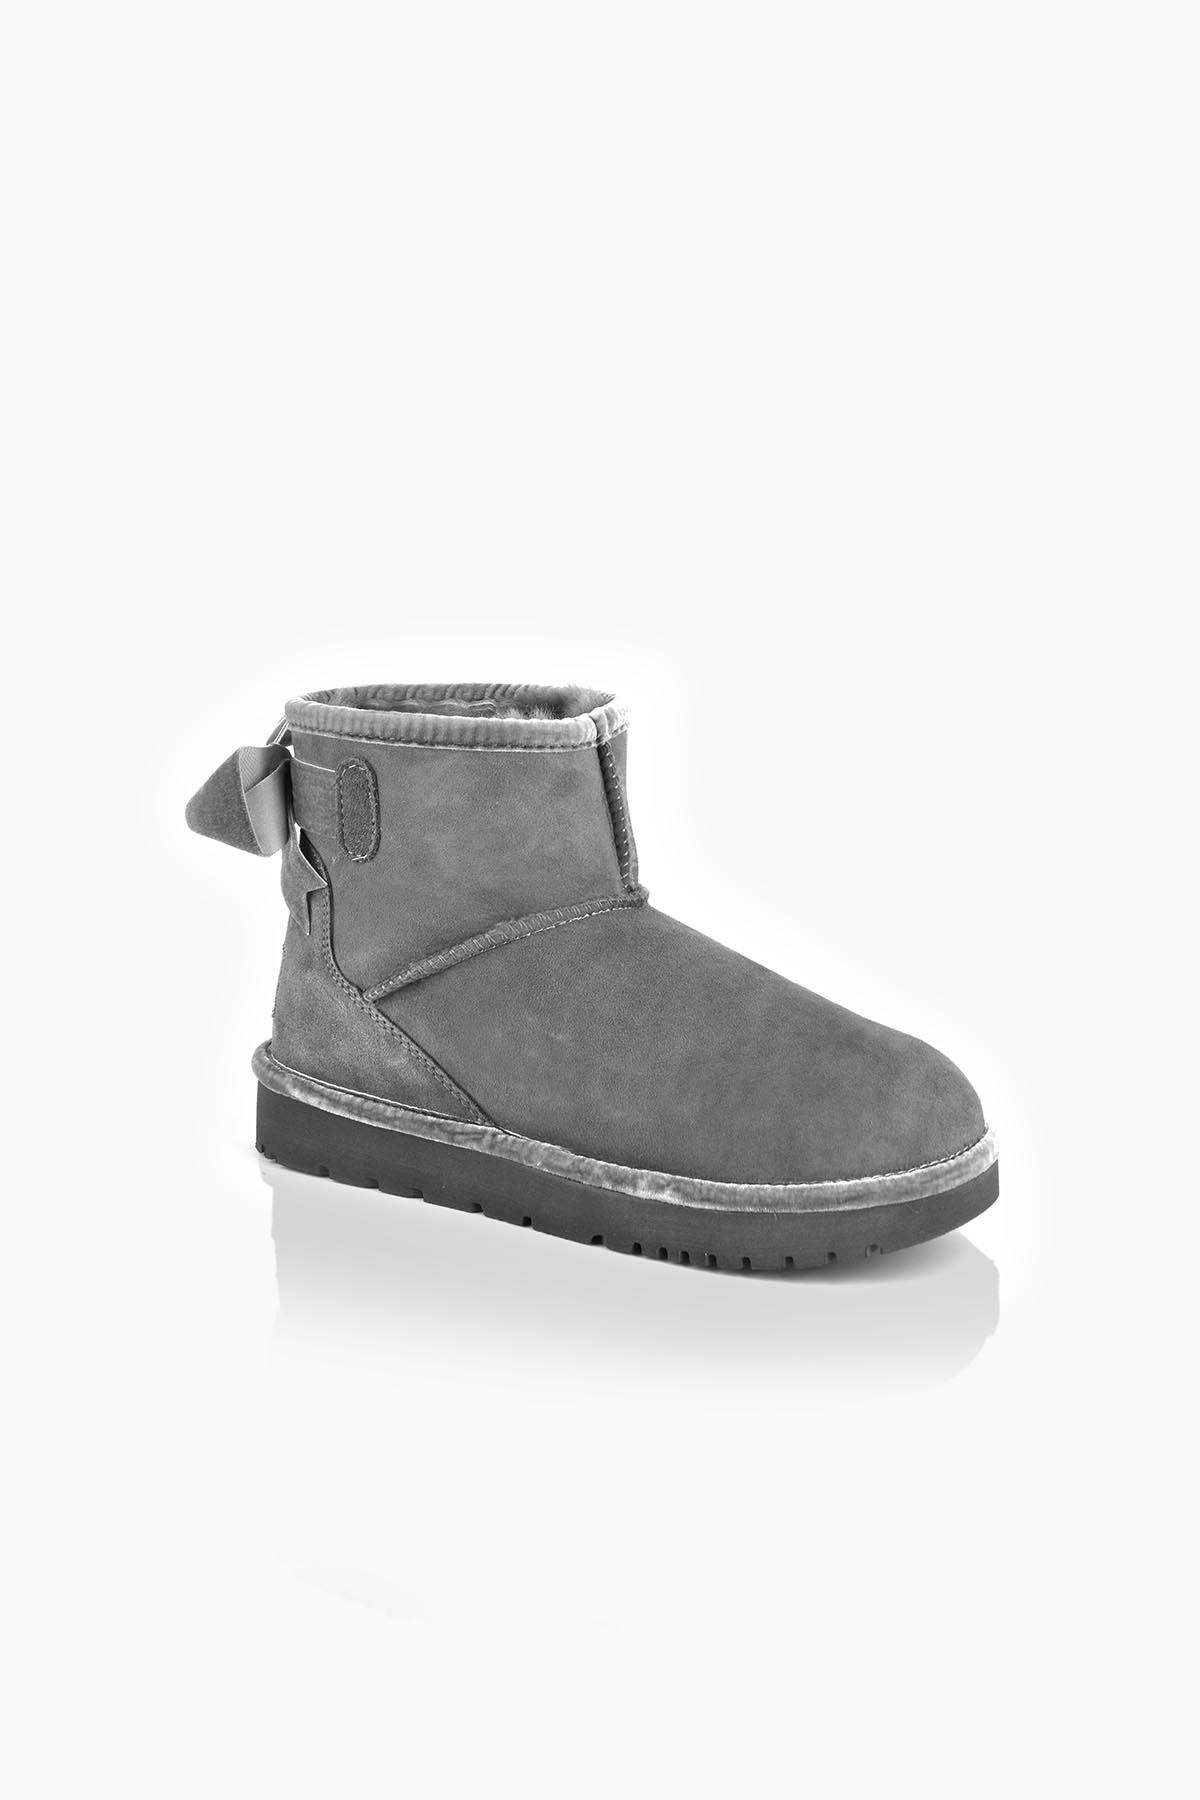 Tms Extra-Short Women Boots With Bow T-26481 Gray